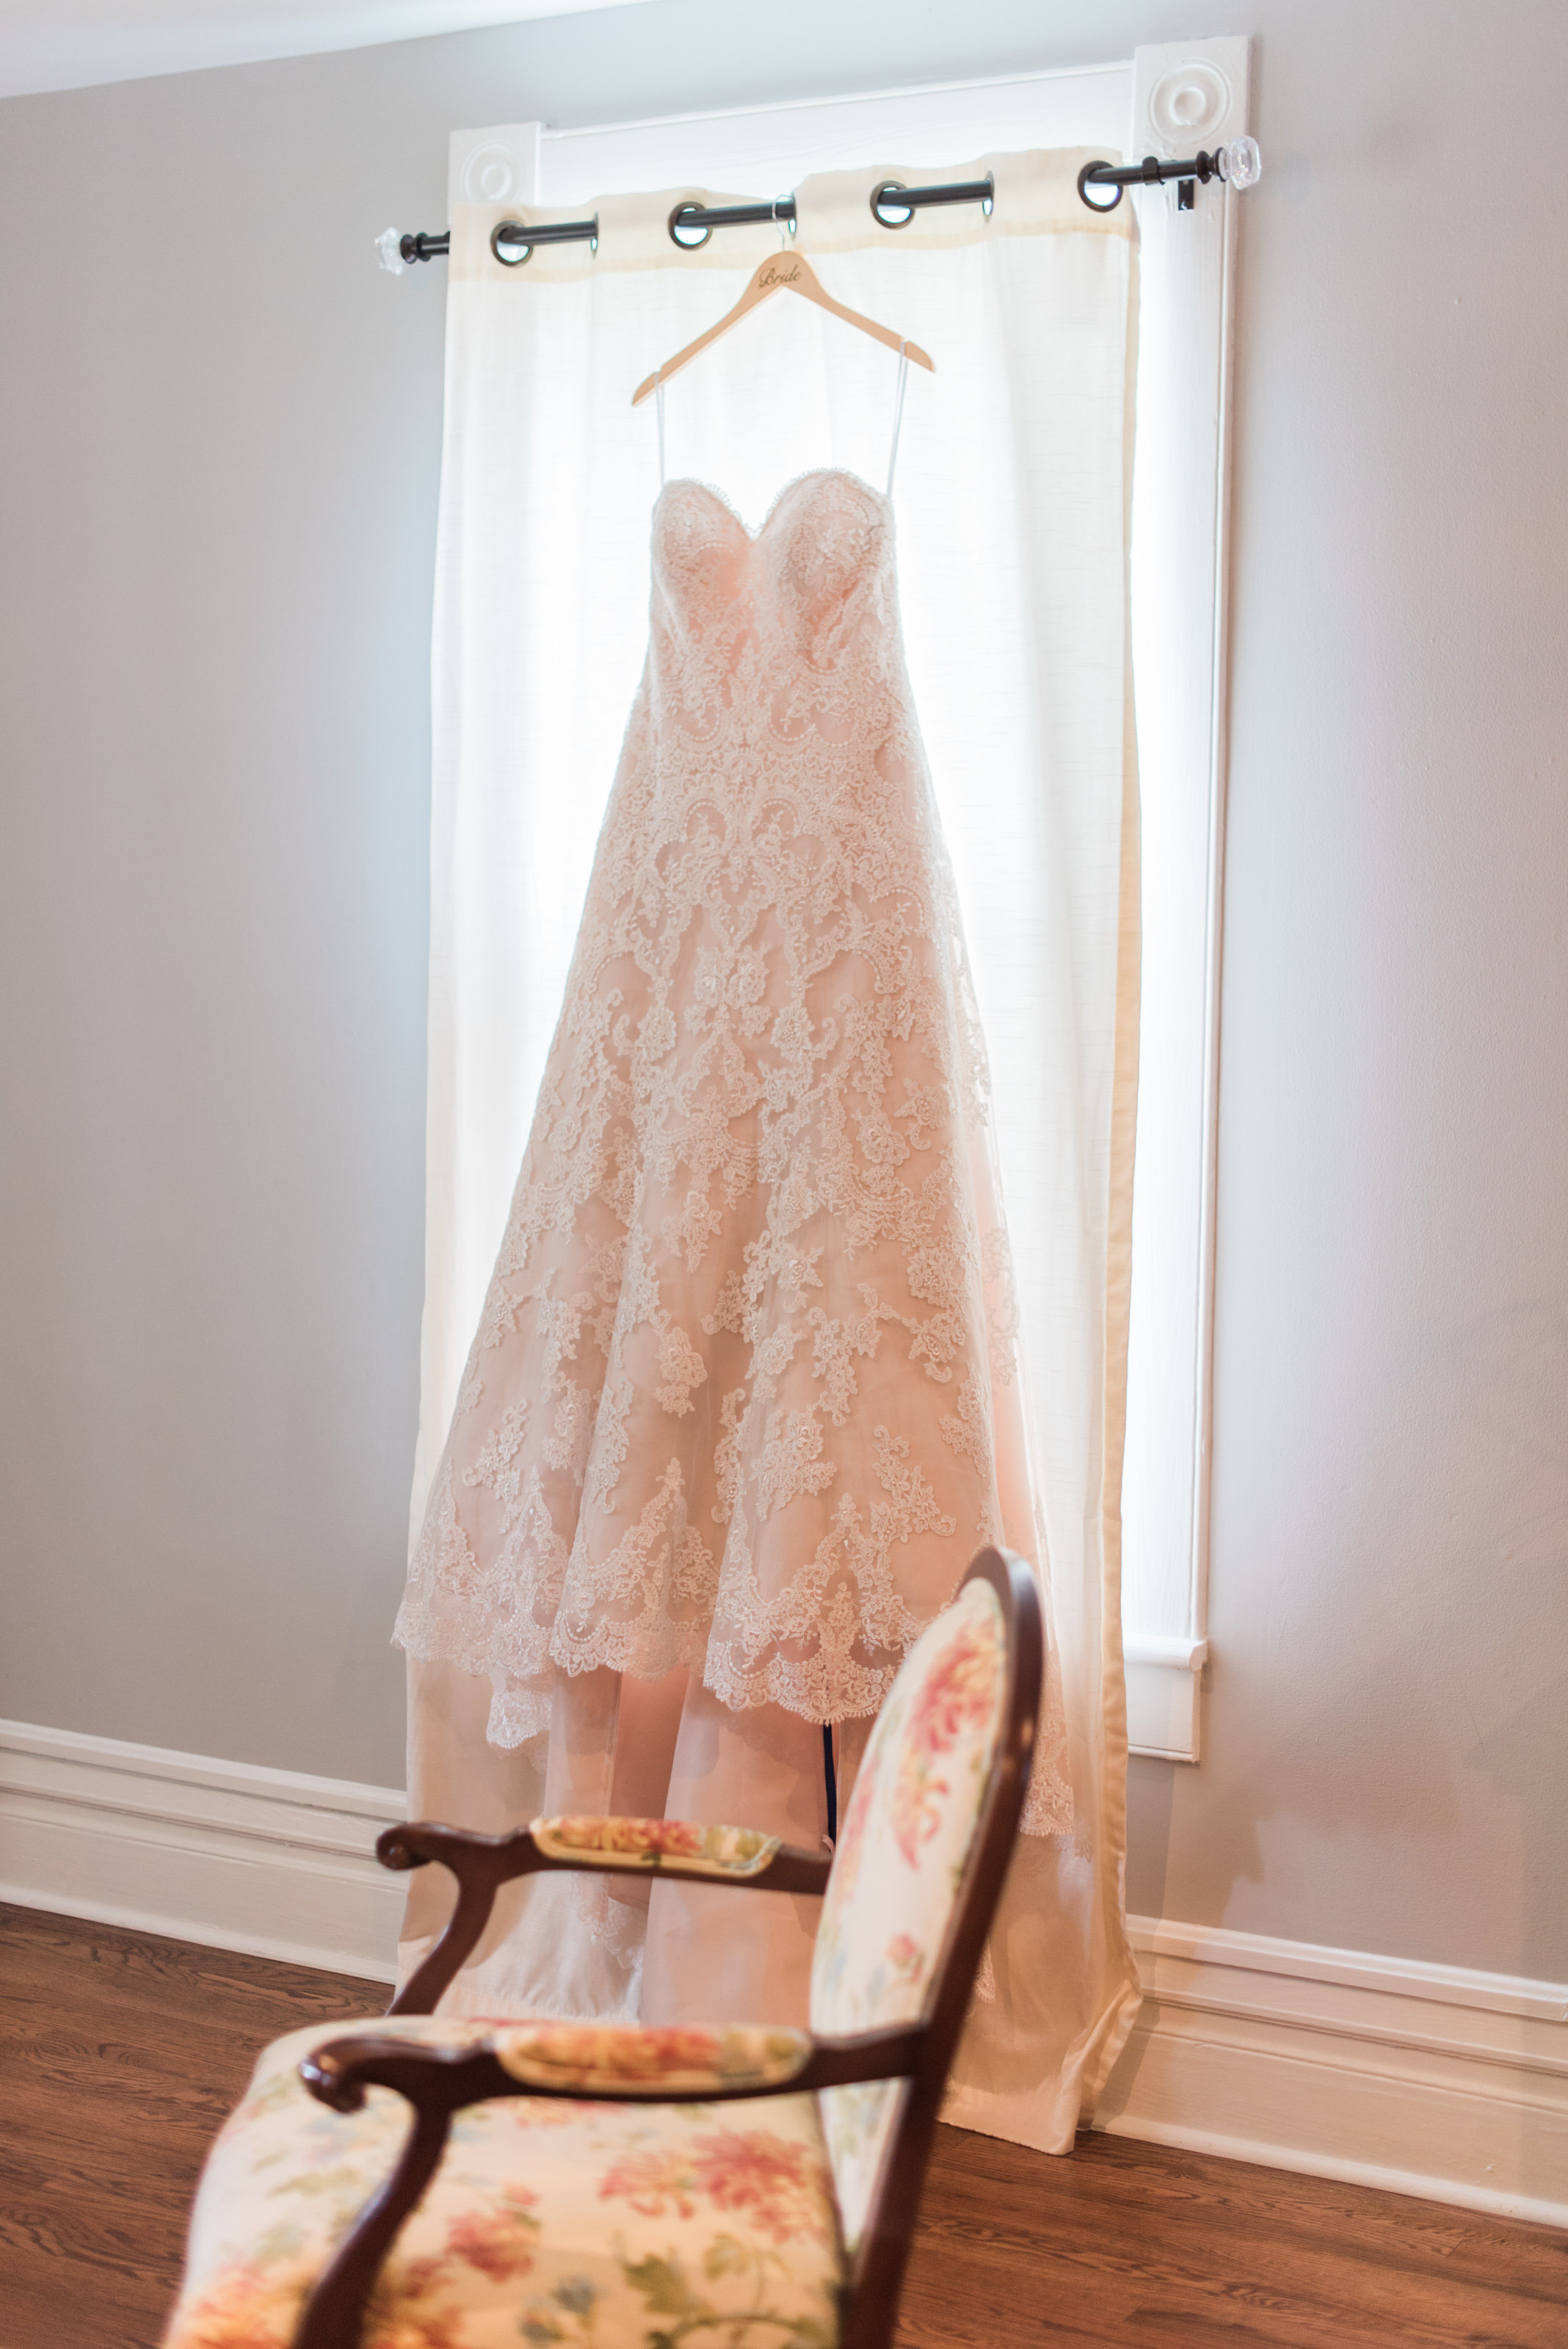 The blush tones and amazing detail of this gown are stunning. pc: Holly Von Laken